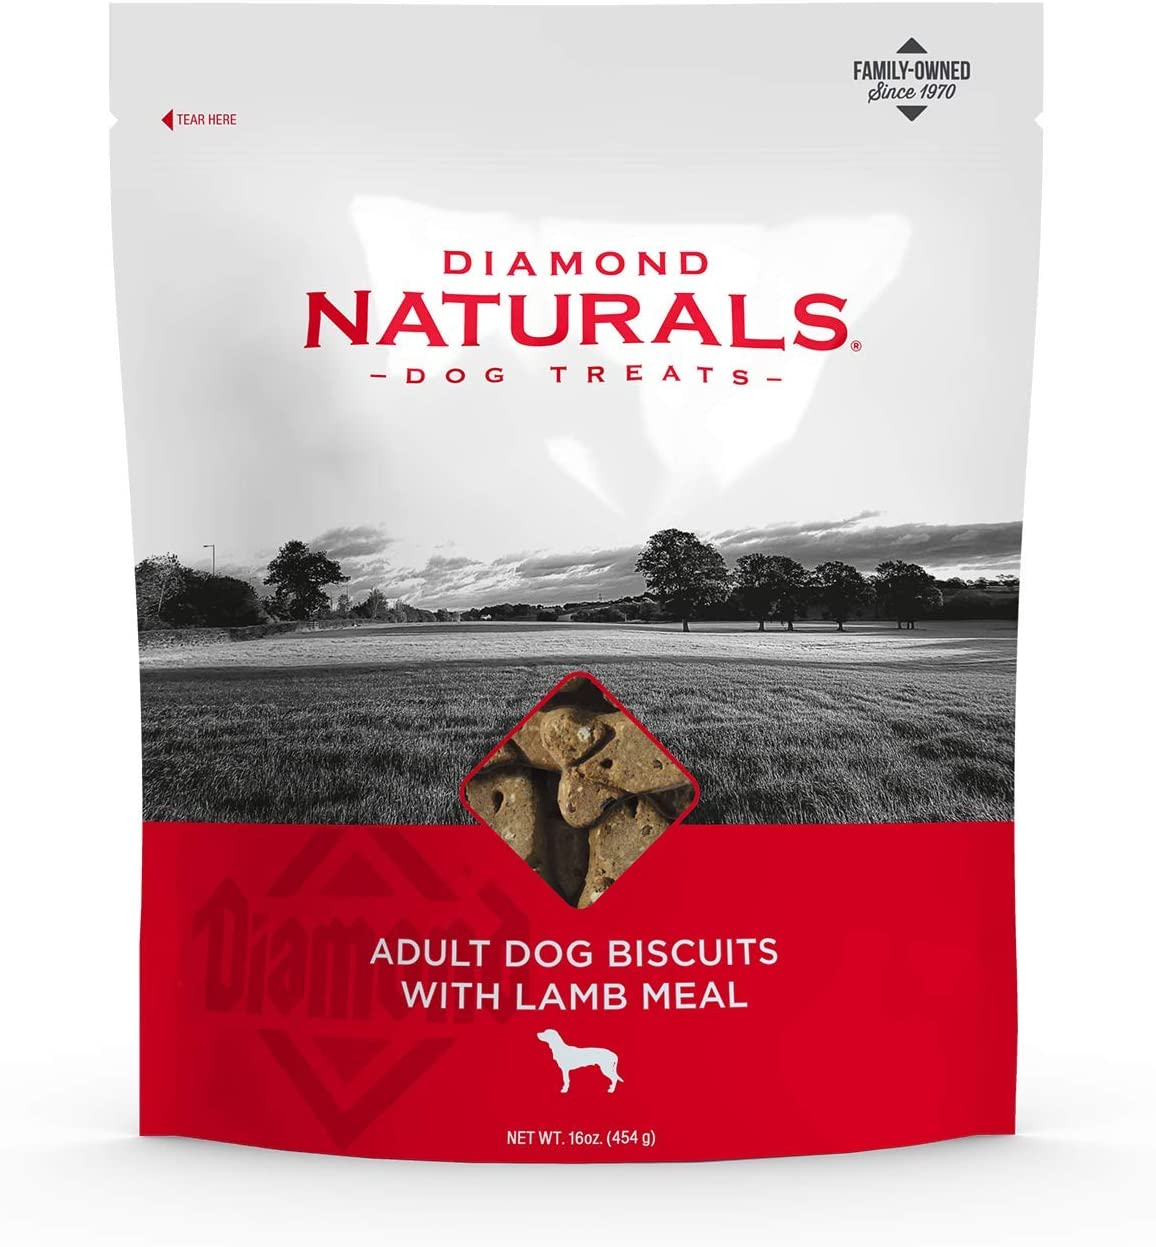 Diamond Naturals Adult Dog Biscuit Treats Are Made from Lamb Protein, Taste Great and Helps Keep Teeth Clean 16oz